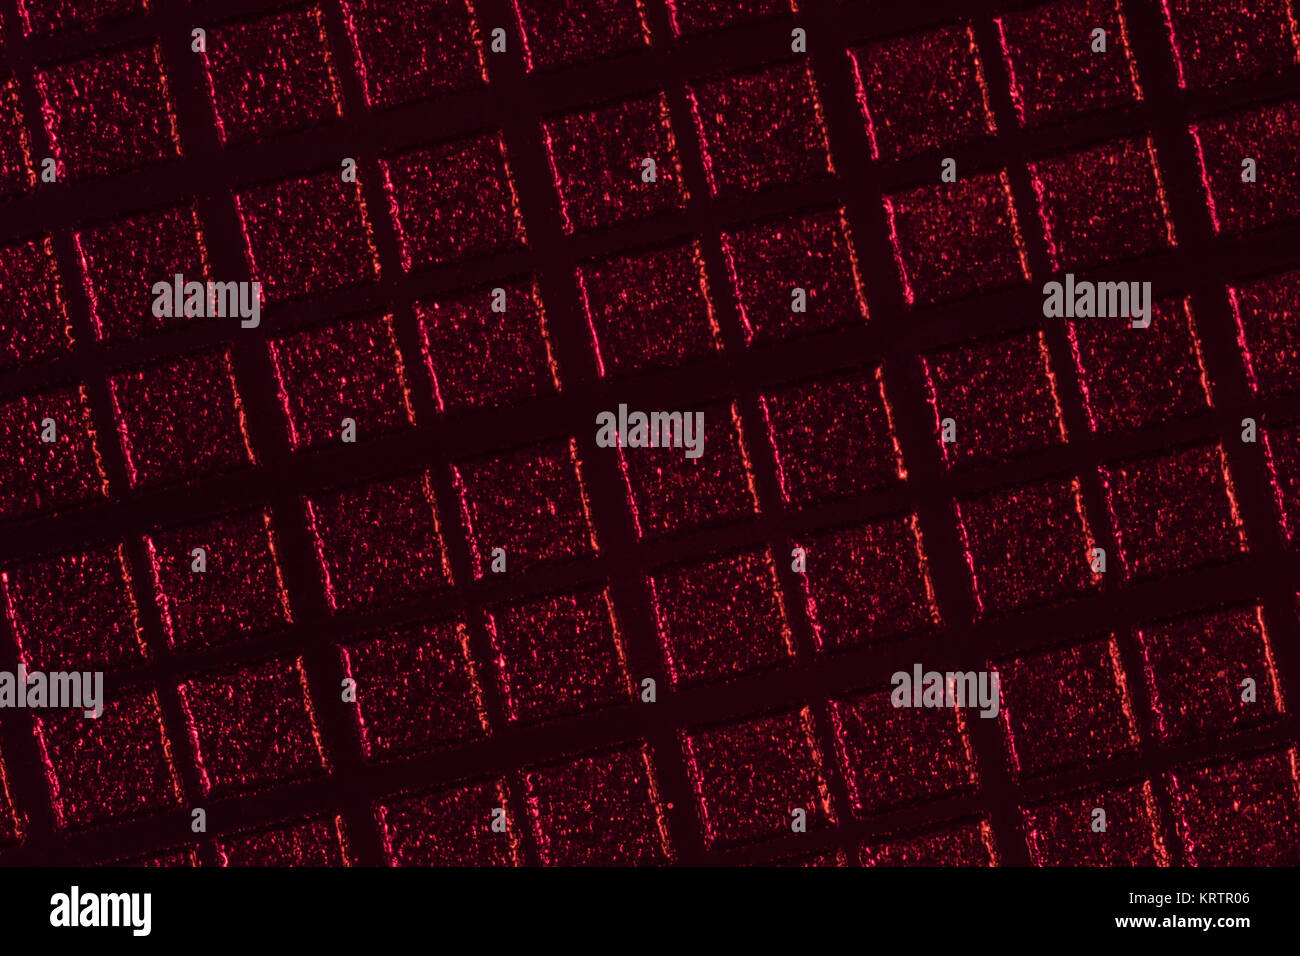 Abstract macro-photo of the textures on the casing of a VHS cassette. - Stock Image